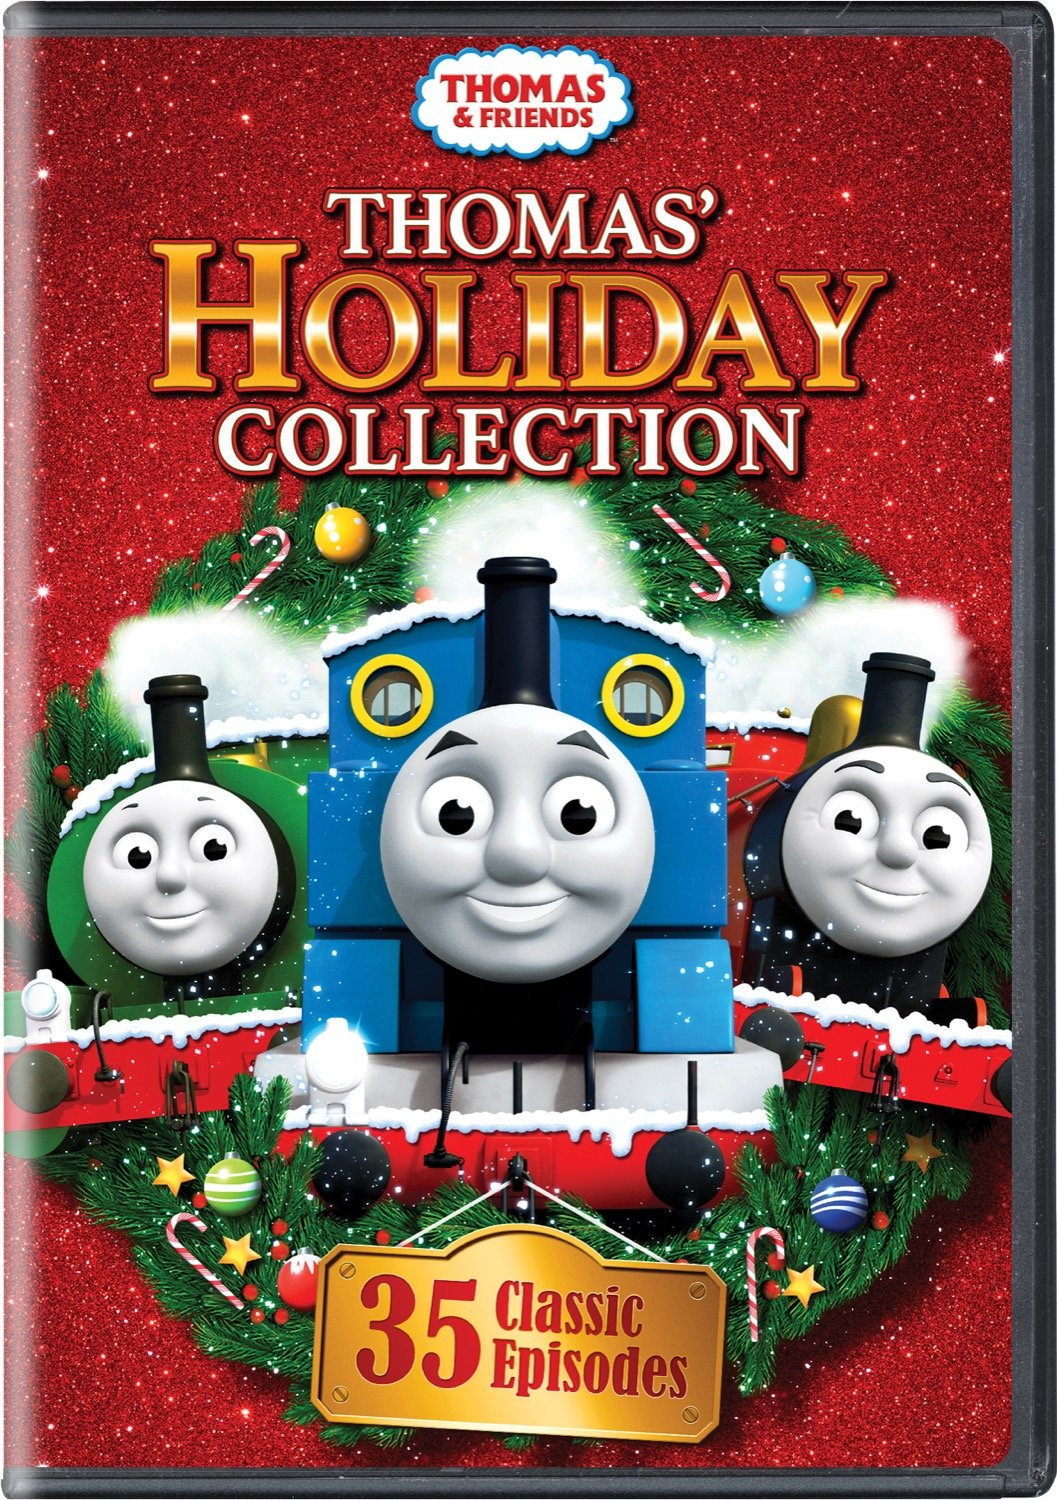 thomas friends christmas holiday collection 35 classic episodes box dvd set ebay. Black Bedroom Furniture Sets. Home Design Ideas